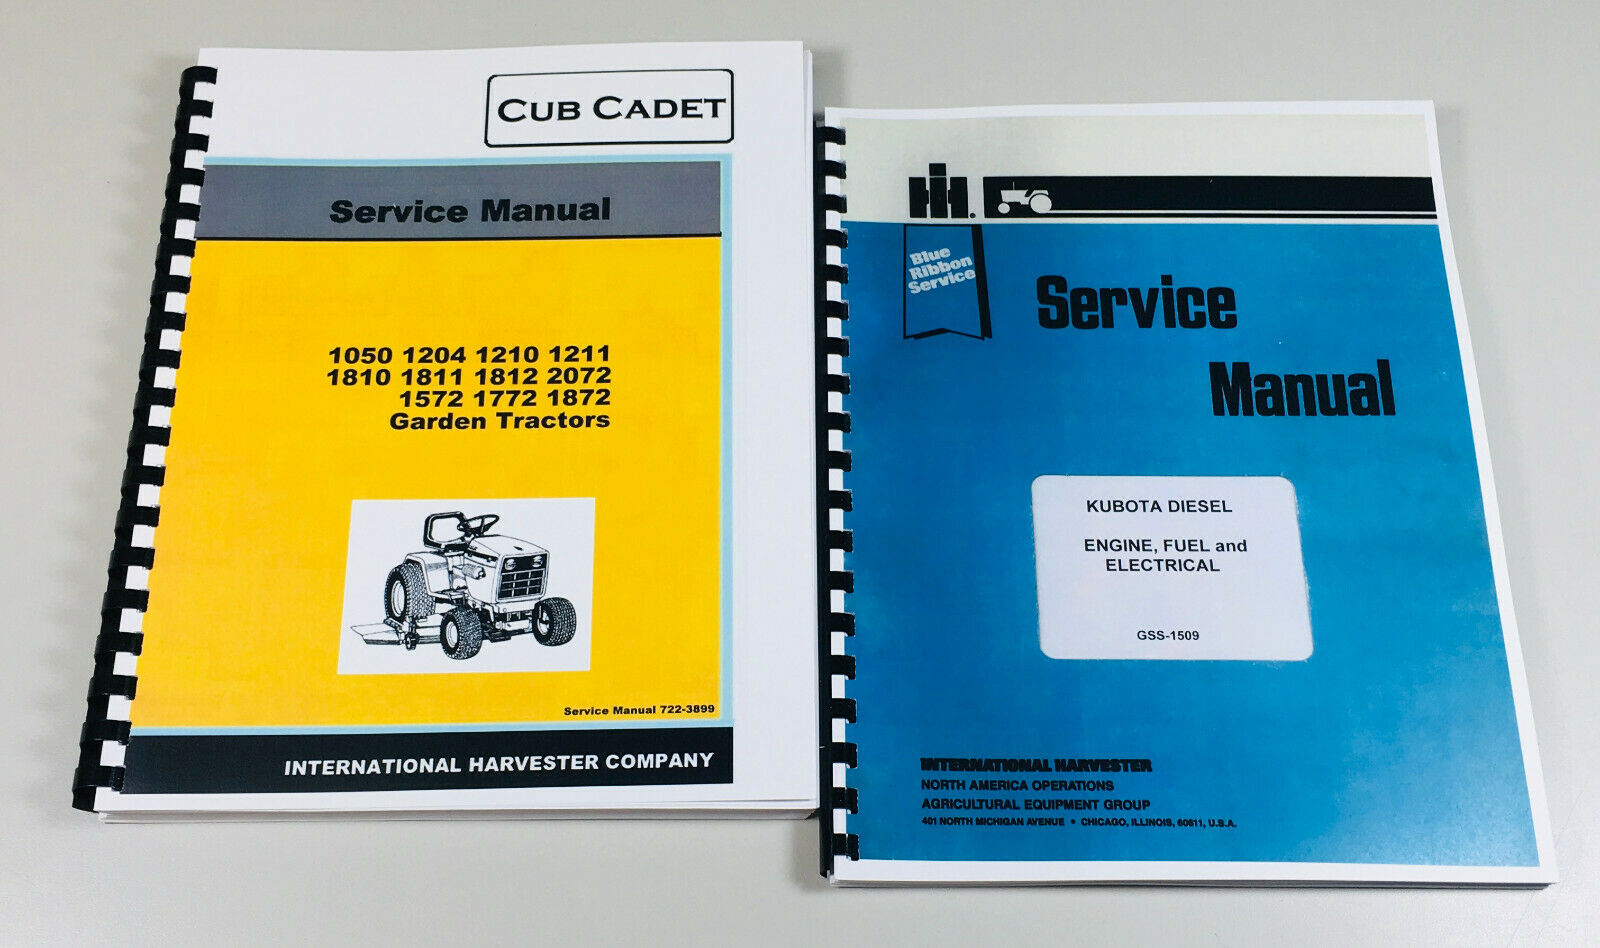 Cub Cadet 1572 1772 Lawn Garden Tractor Service Repair Shop Manual Kubota  Engine 1 of 12FREE Shipping ...